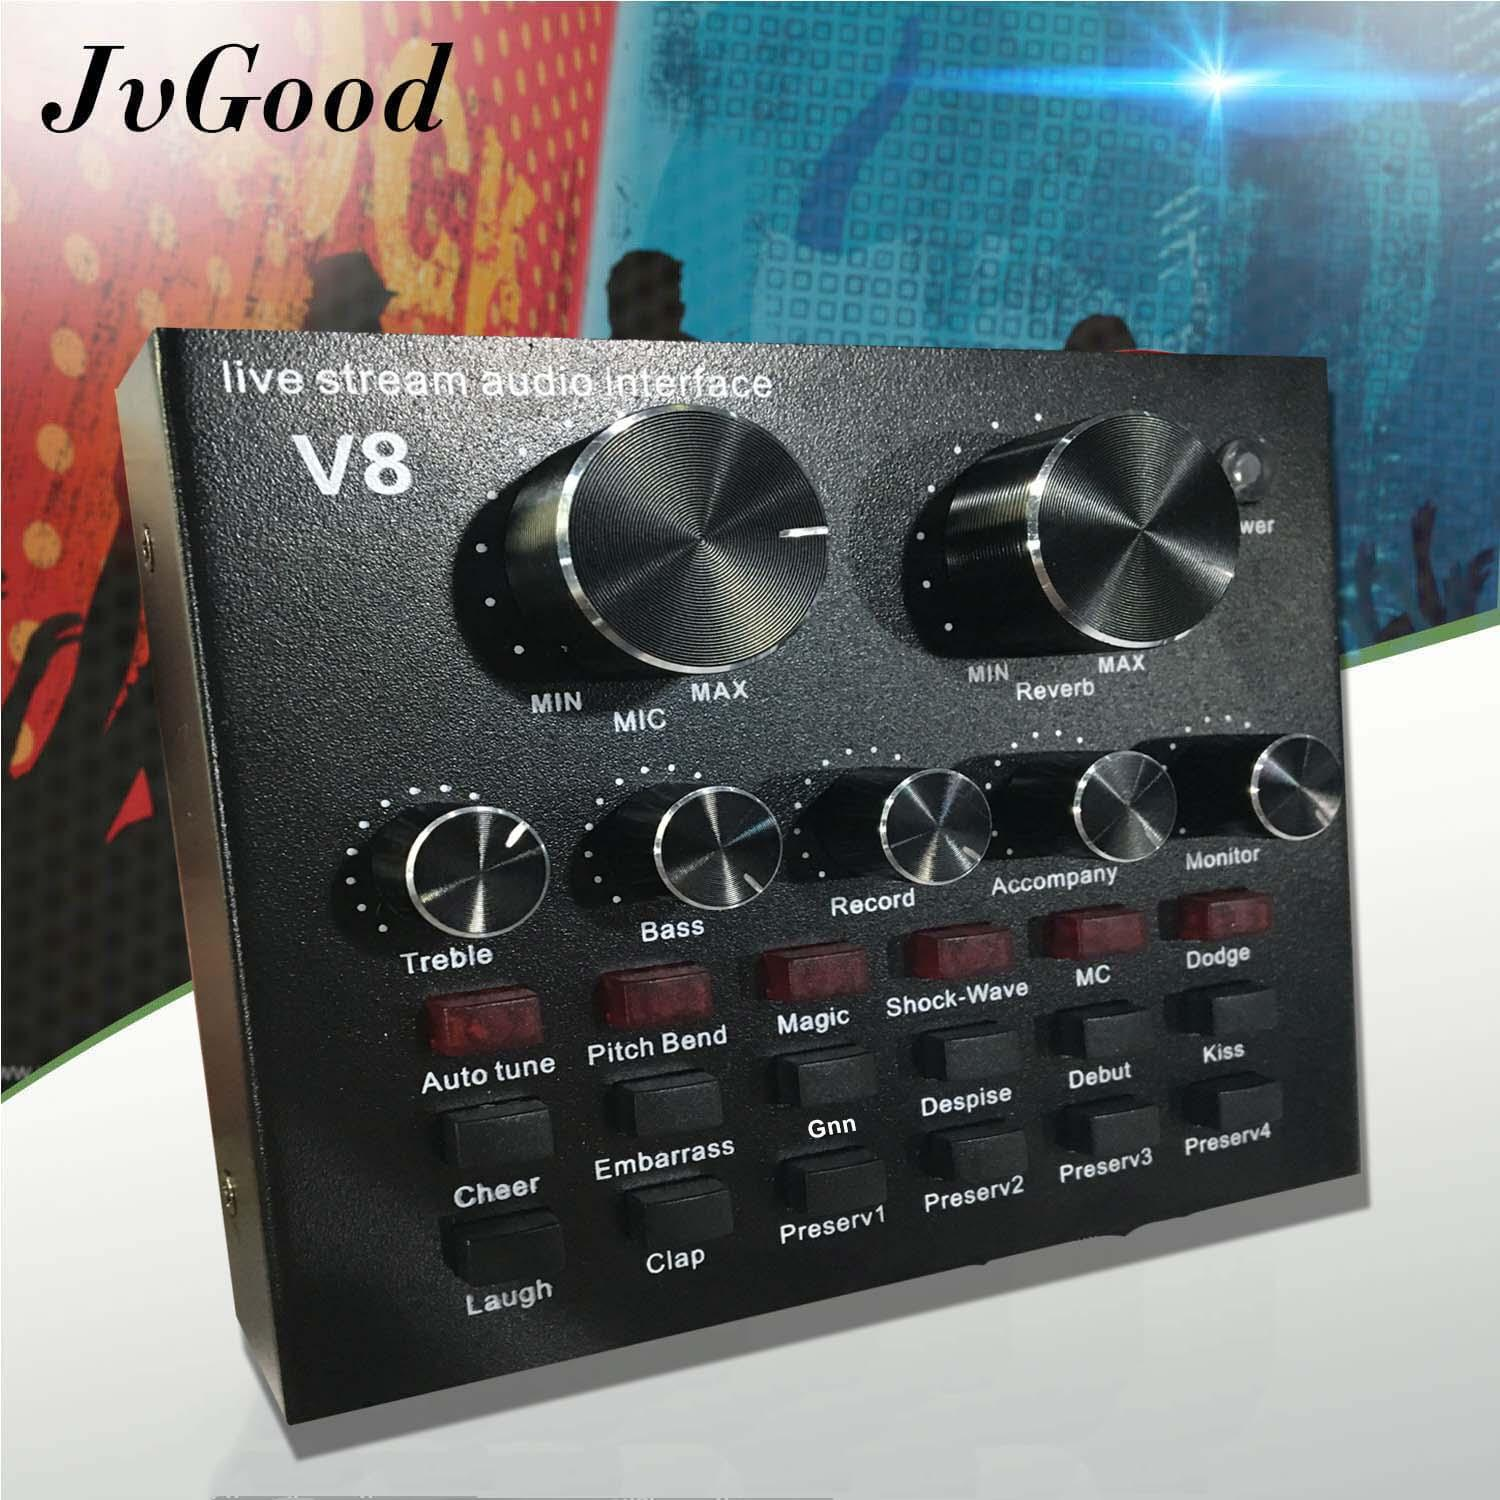 Mixers For Sale Audio Interface Prices Brands Specs In Ultra Sensitive Solid State Clap Switch Jvgood Mixer Karaoke Sound Compact Live Streaming With 12 Electric Sounds